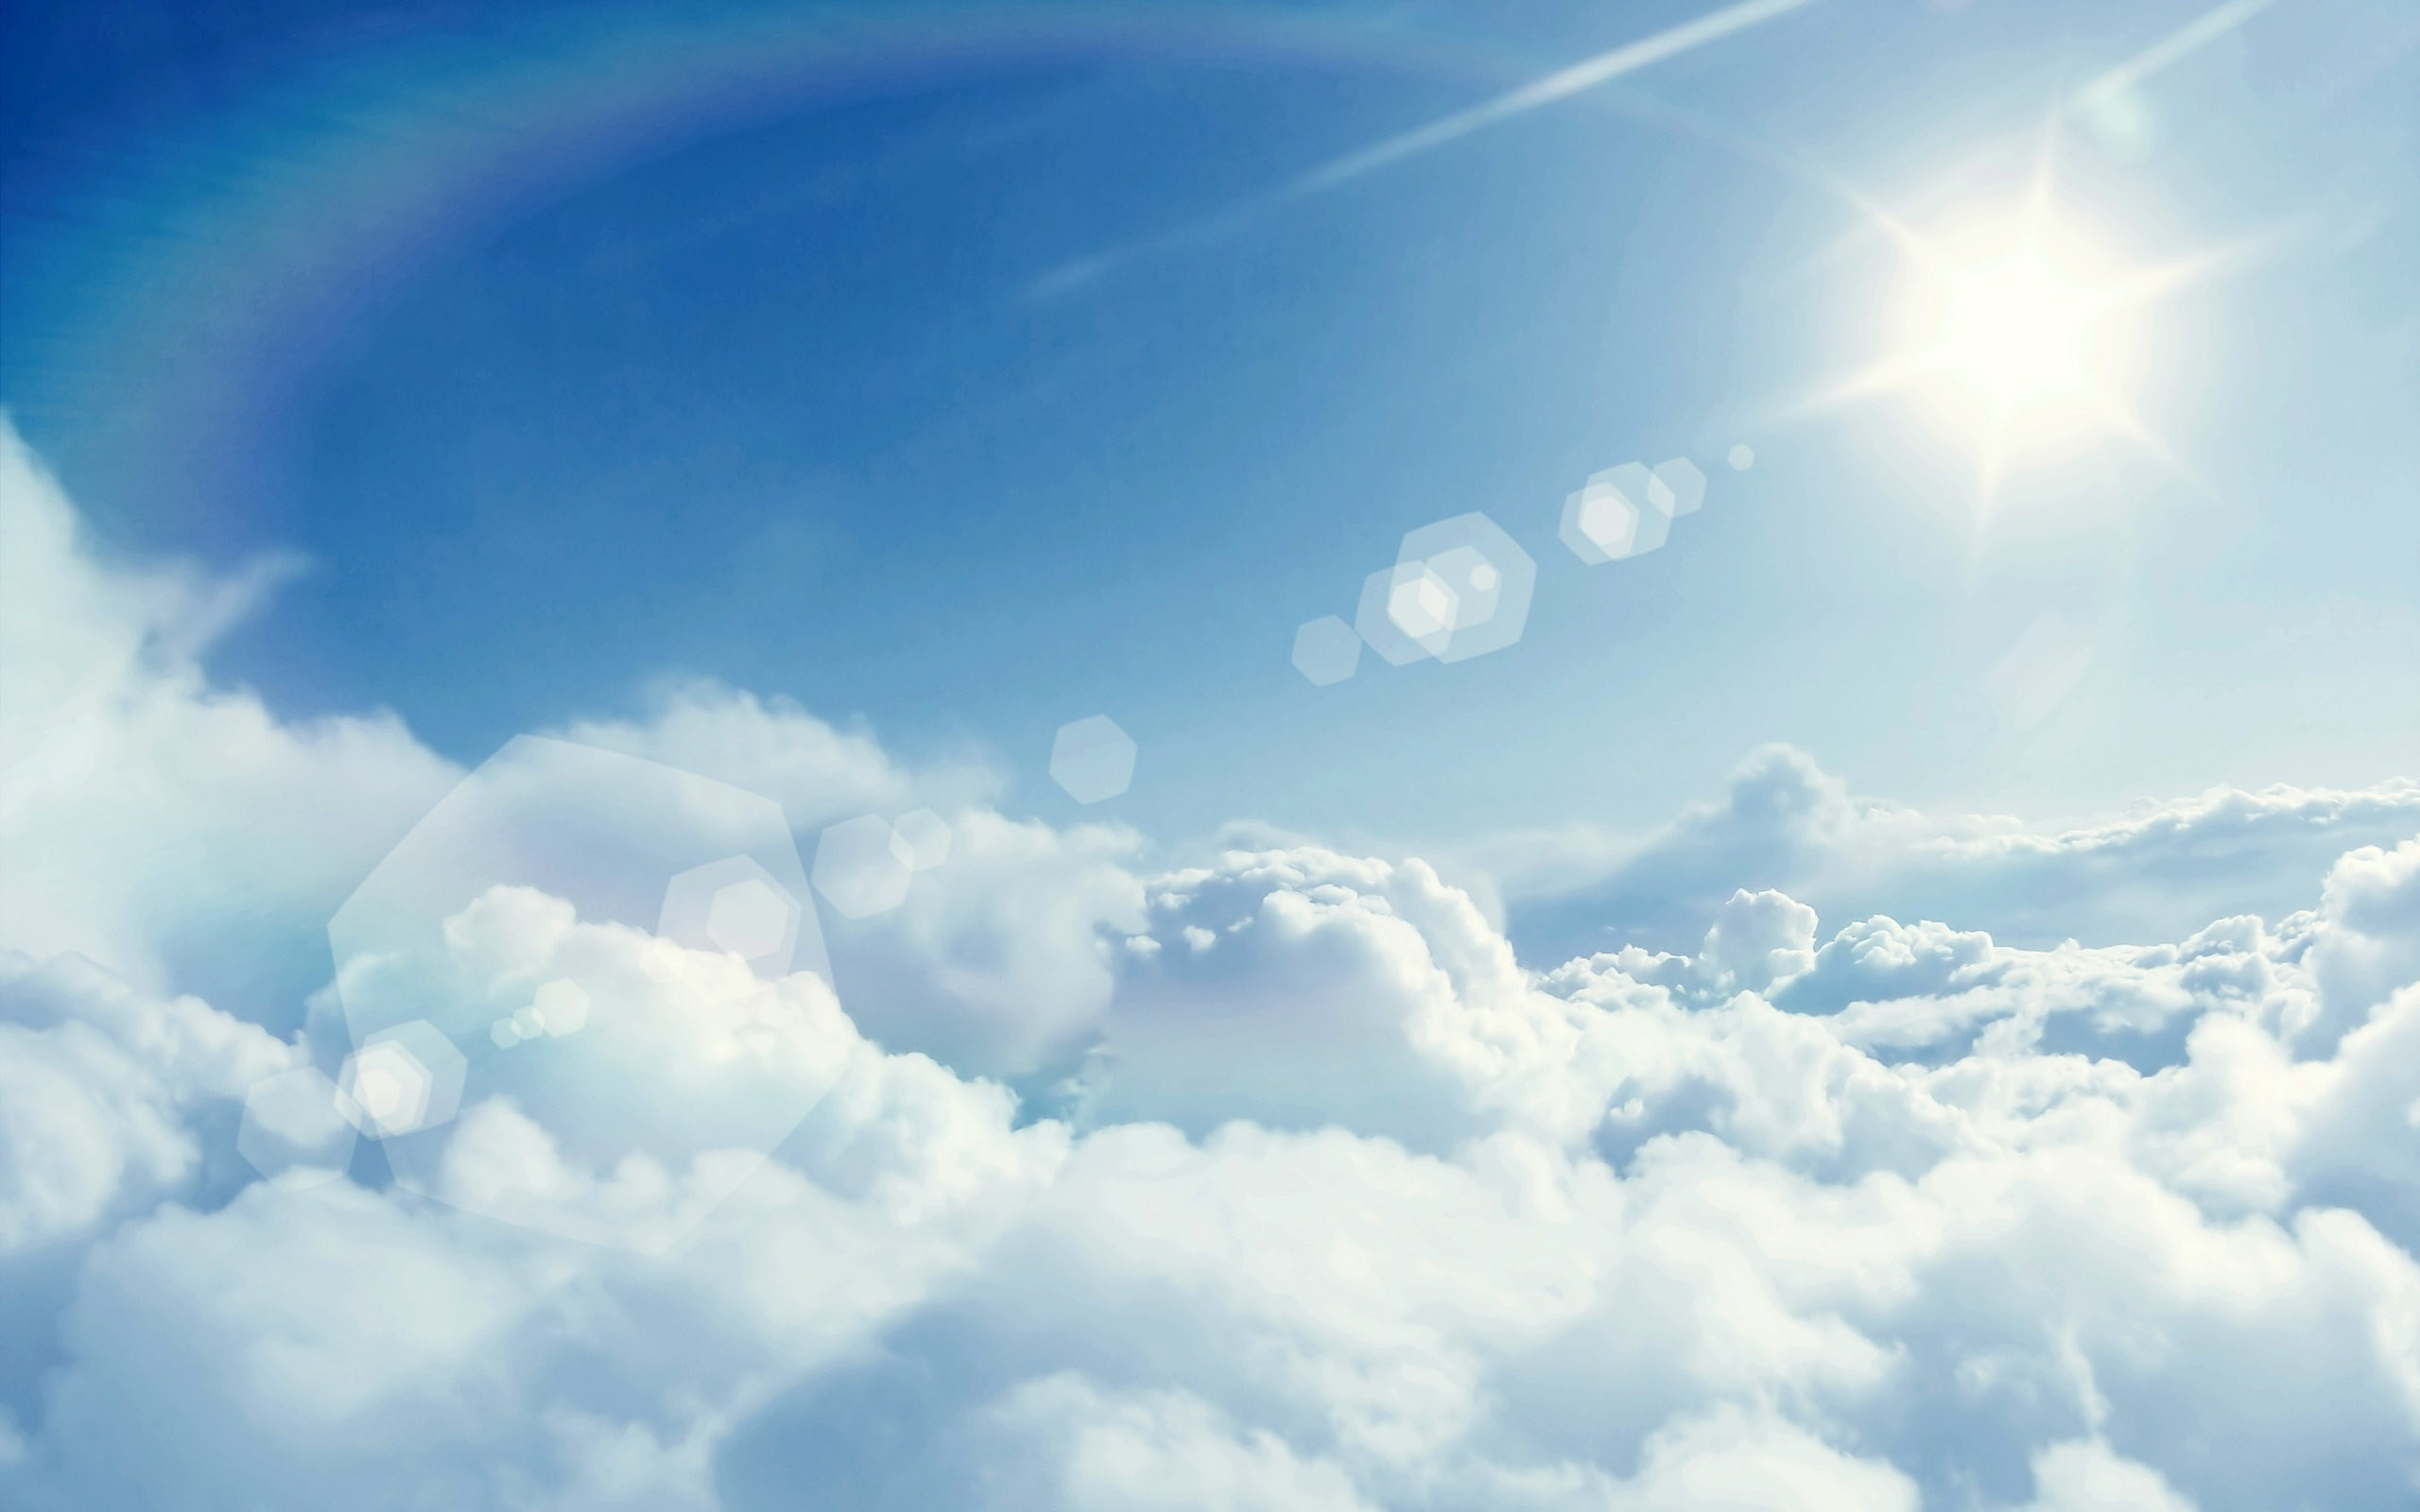 blue sky and clouds wallpaper (57+ images)